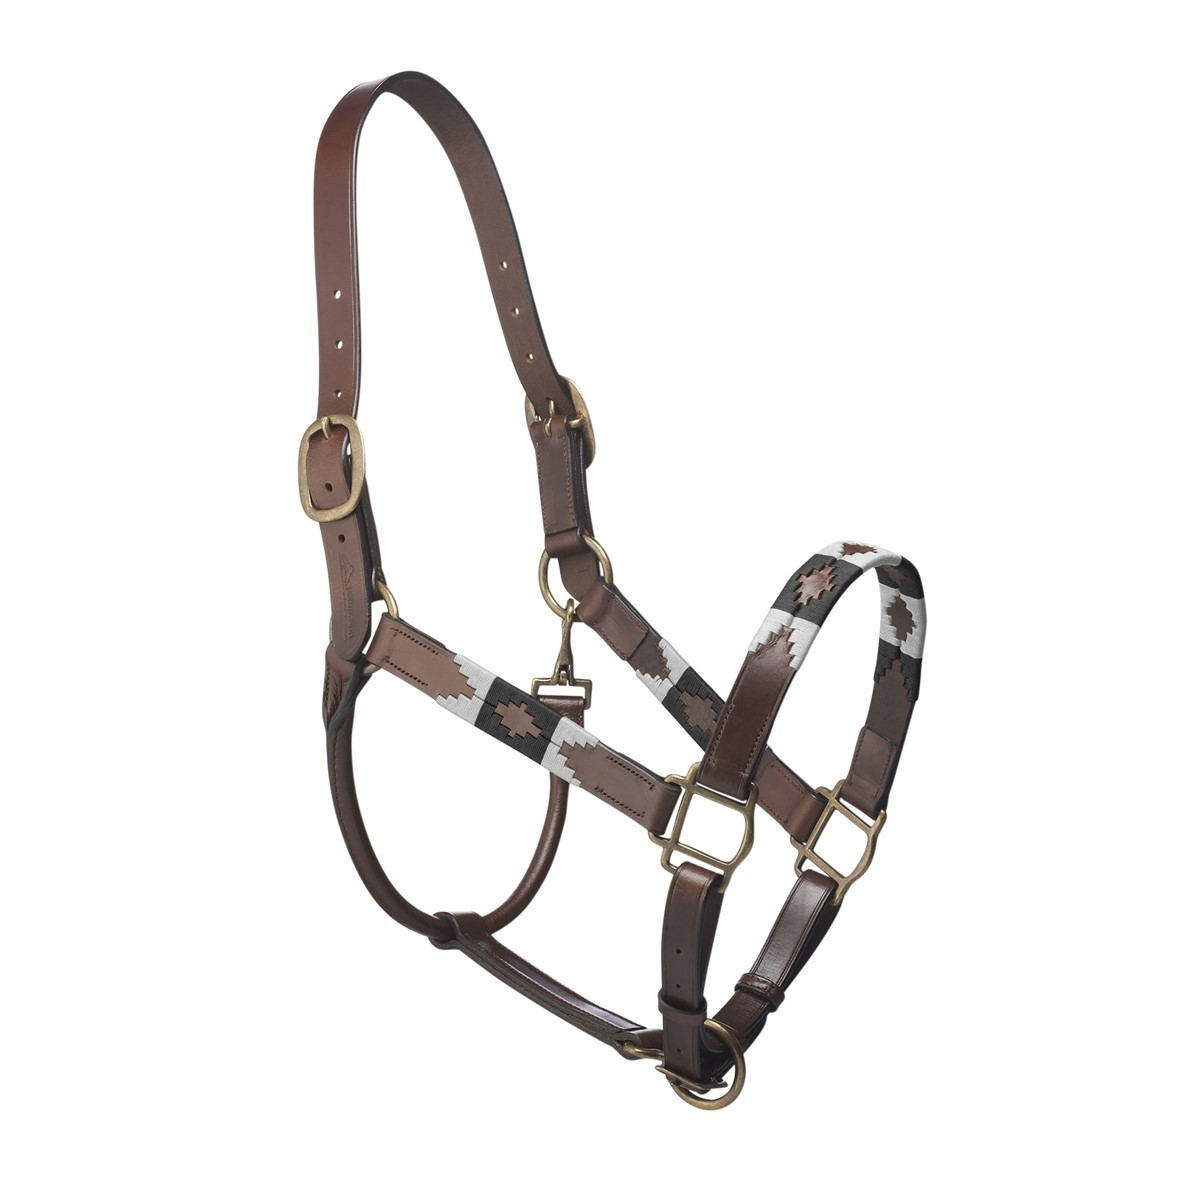 Pampeano Pampa Headcollar - Grey and Black